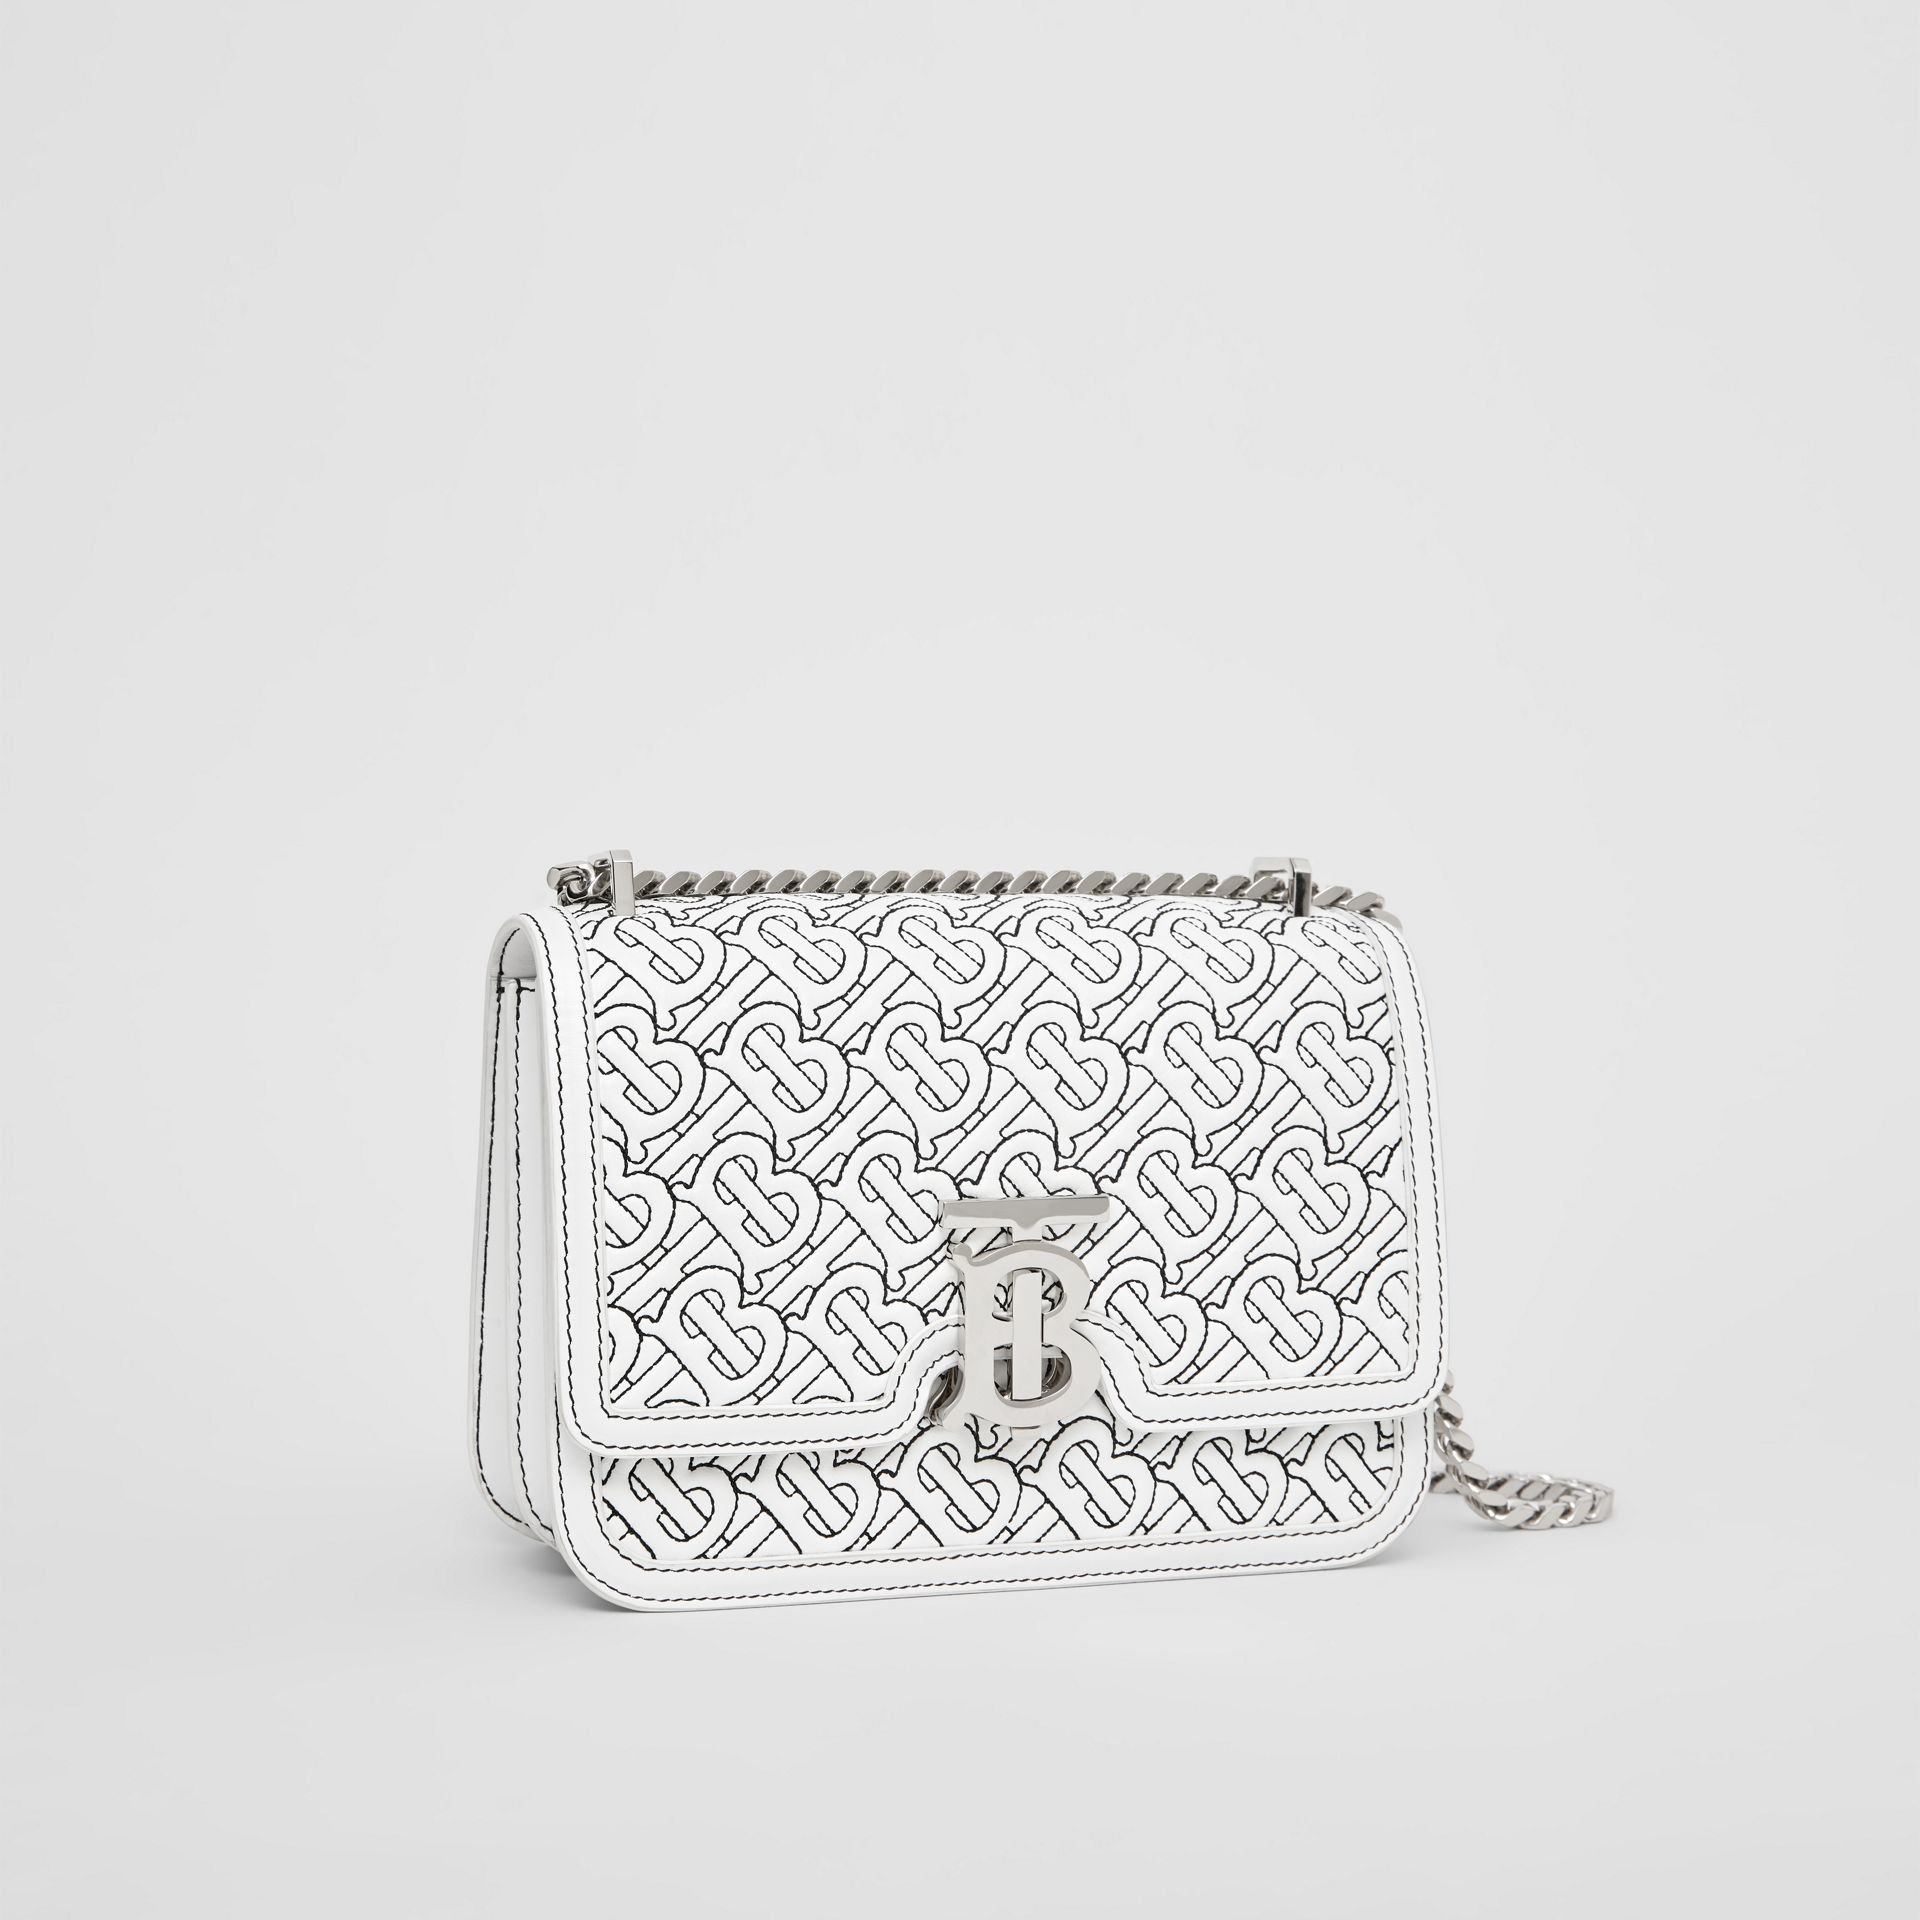 Small Quilted Monogram Lambskin TB Bag in Optic White - Women | Burberry Hong Kong S.A.R. - gallery image 6